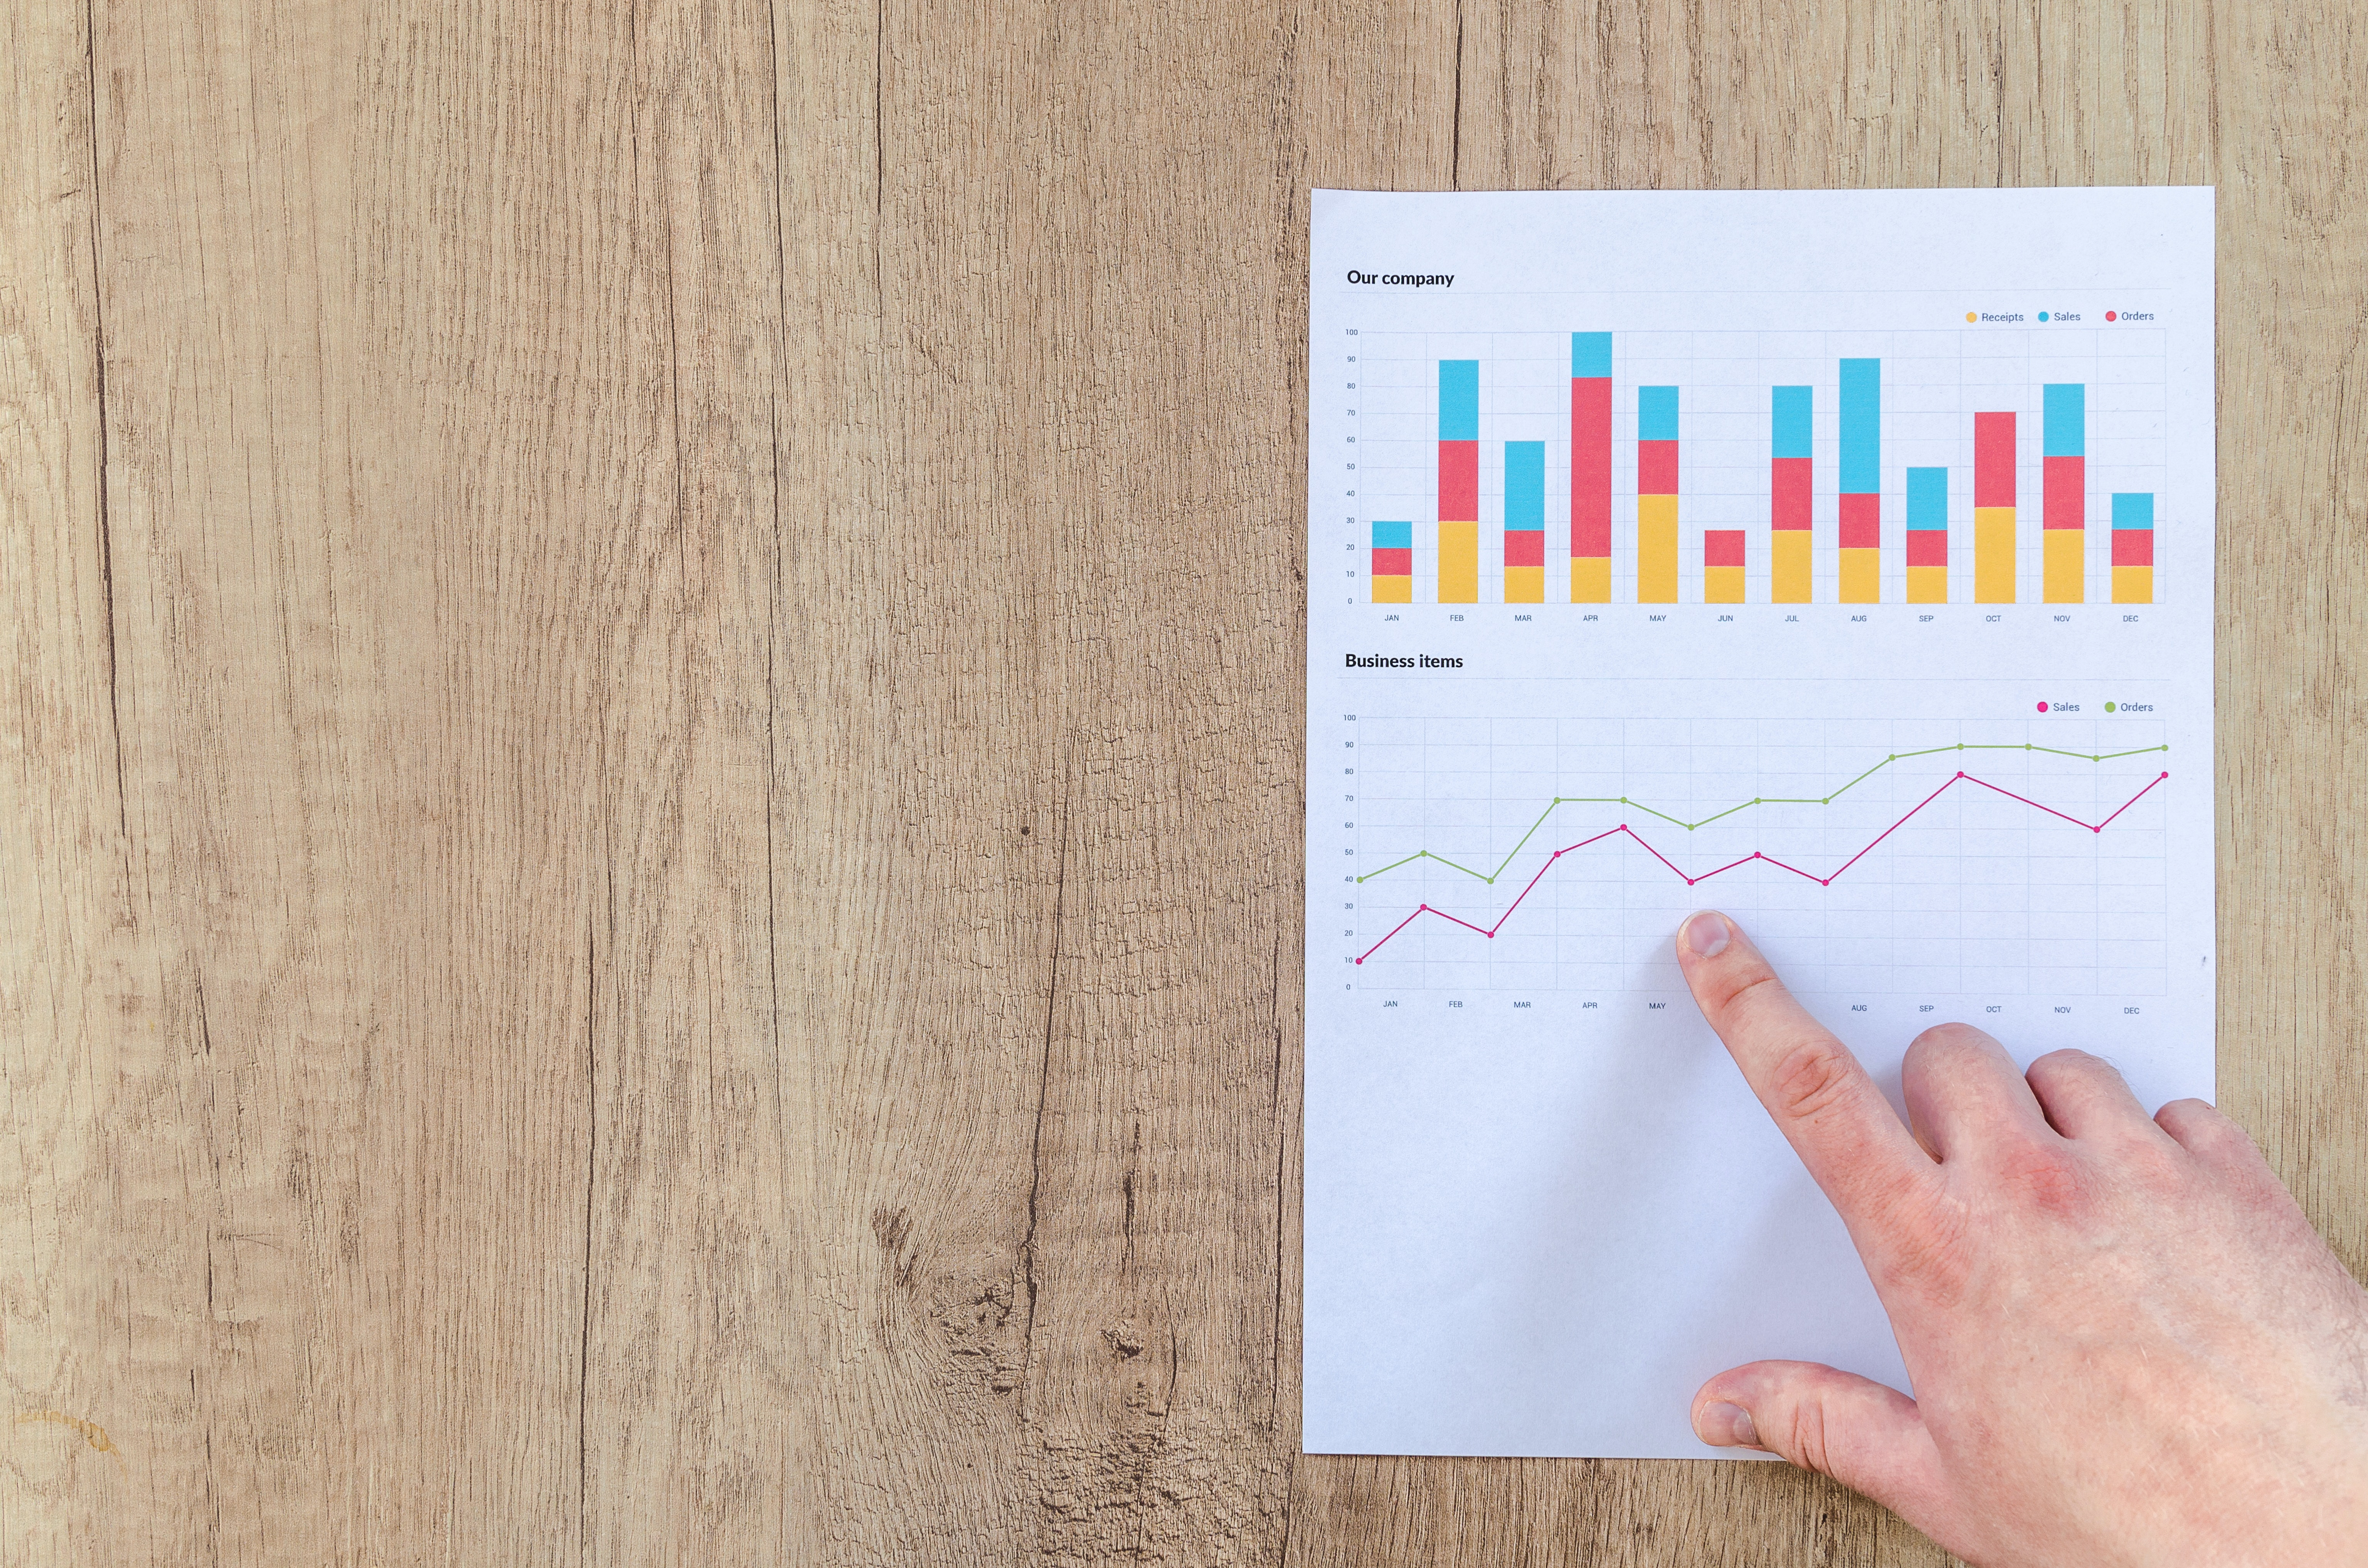 How Effective is Your Fundraising? 6 KPIs to Measure